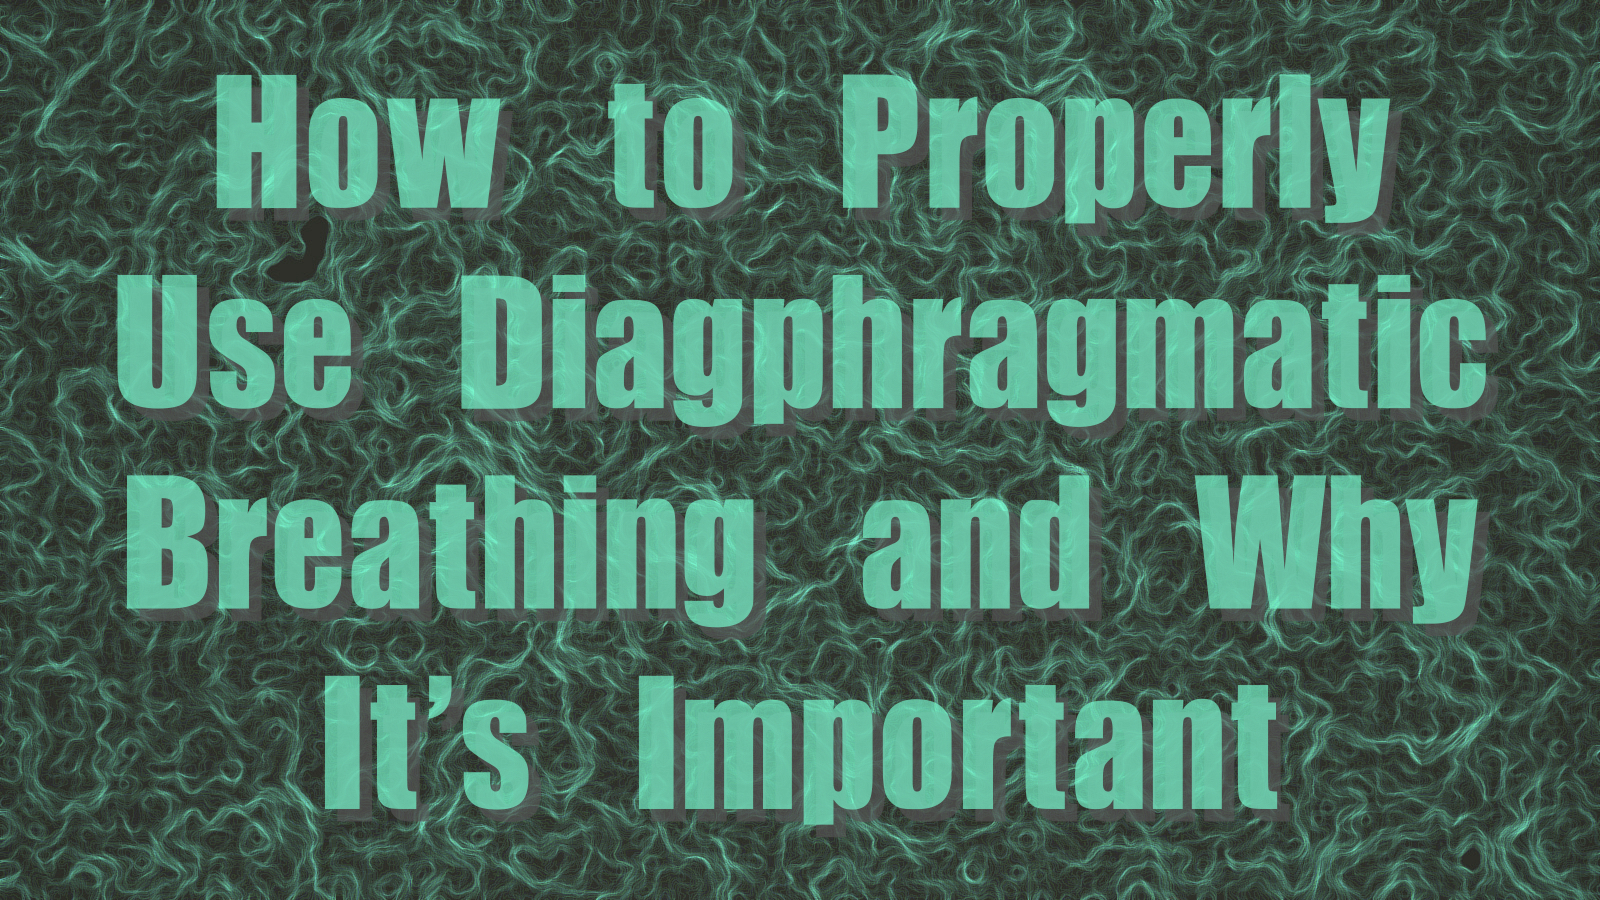 How to Properly Use Diaphragmatic Breathing and Why It's Important